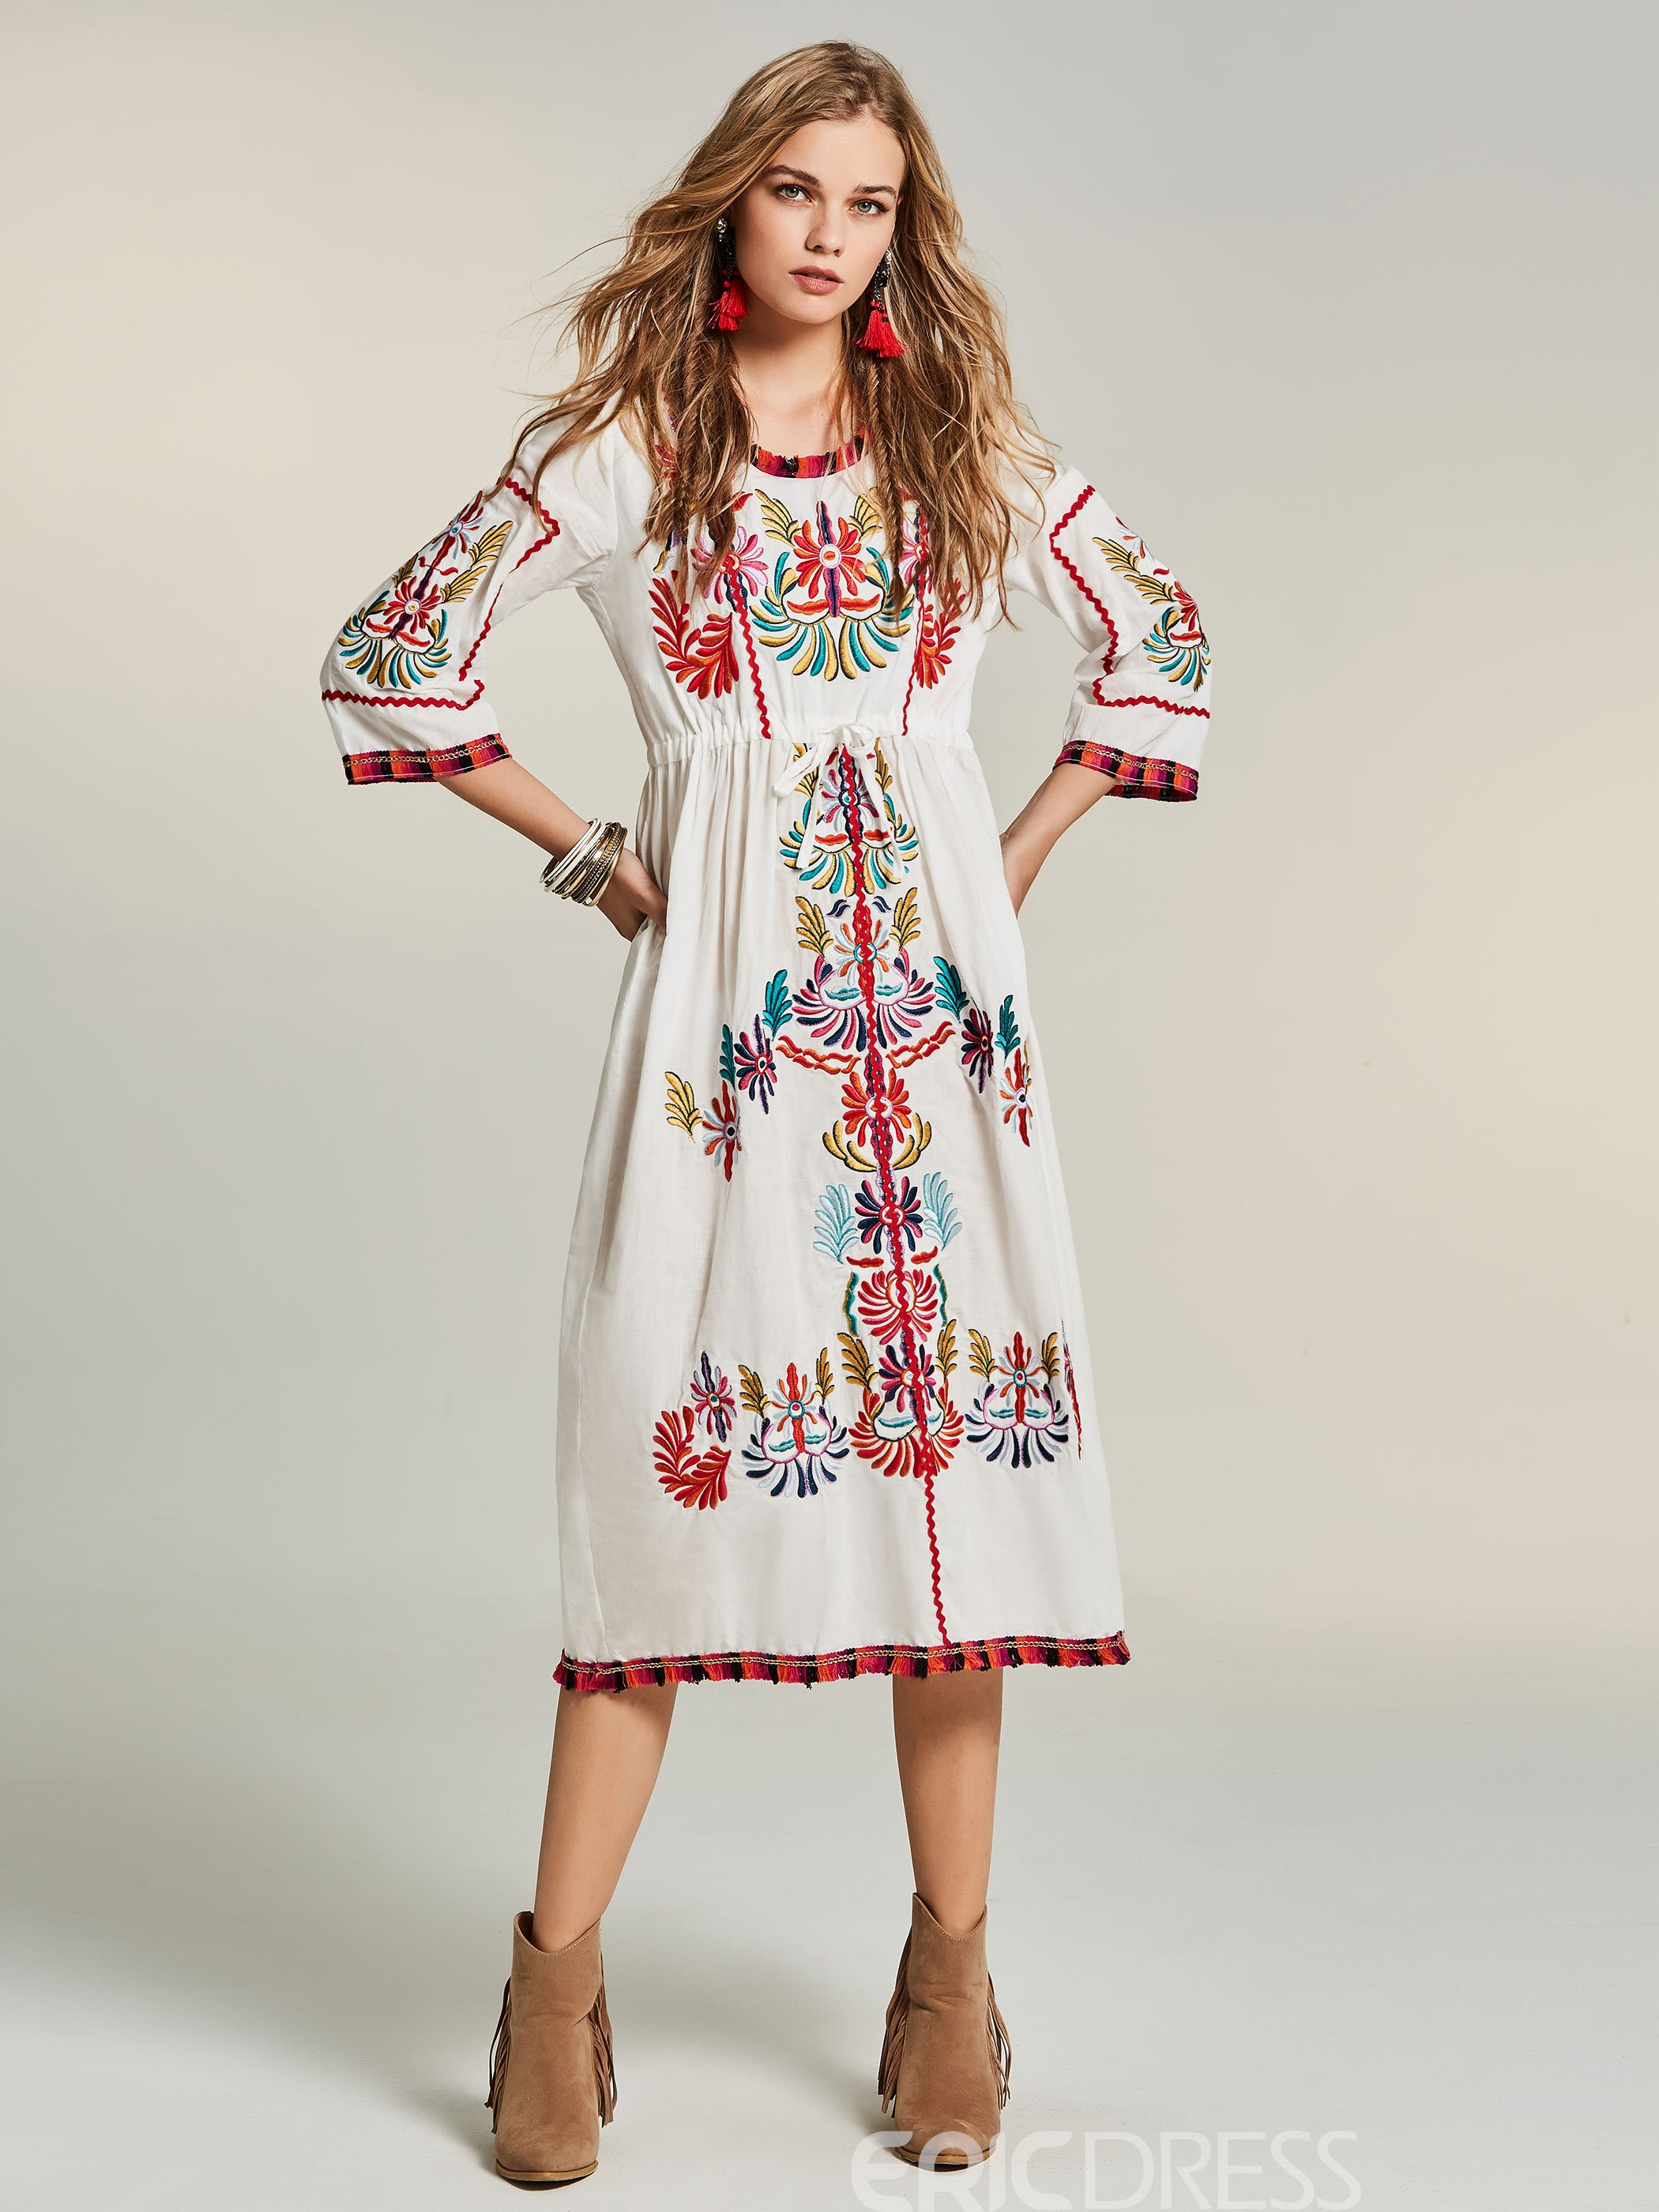 Ericdress Drawstring Mid-Waist Floral Embroideried Casual Dress